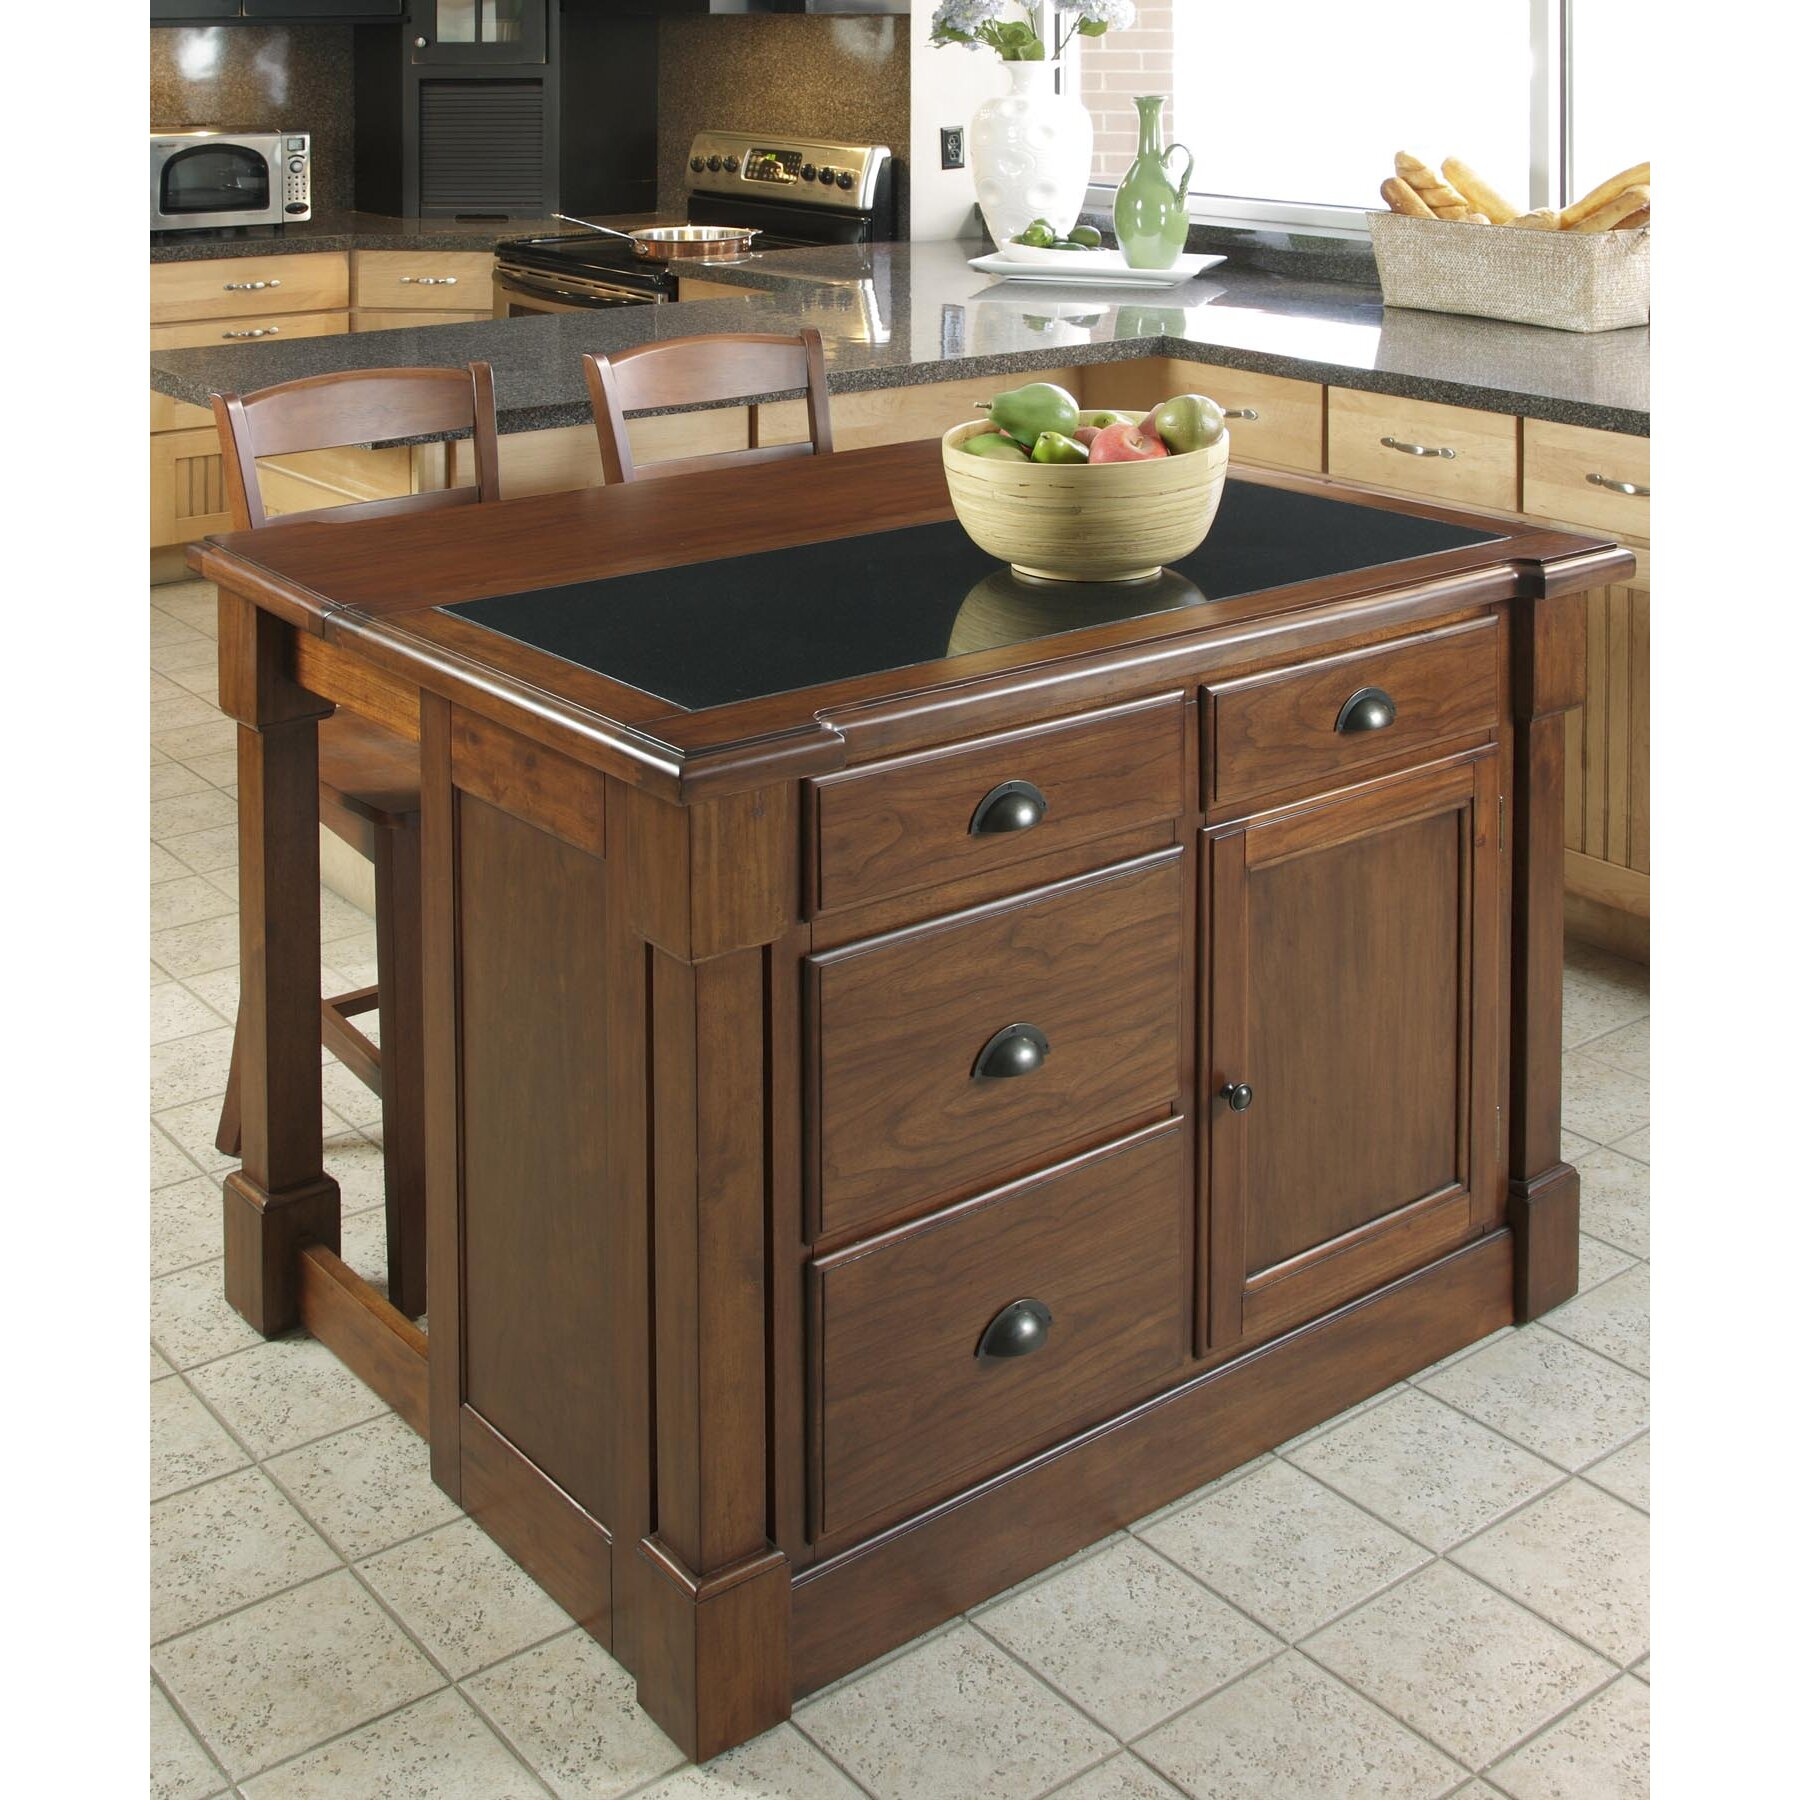 Home Styles Kitchen Island: Home Styles Aspen Kitchen Island & Reviews